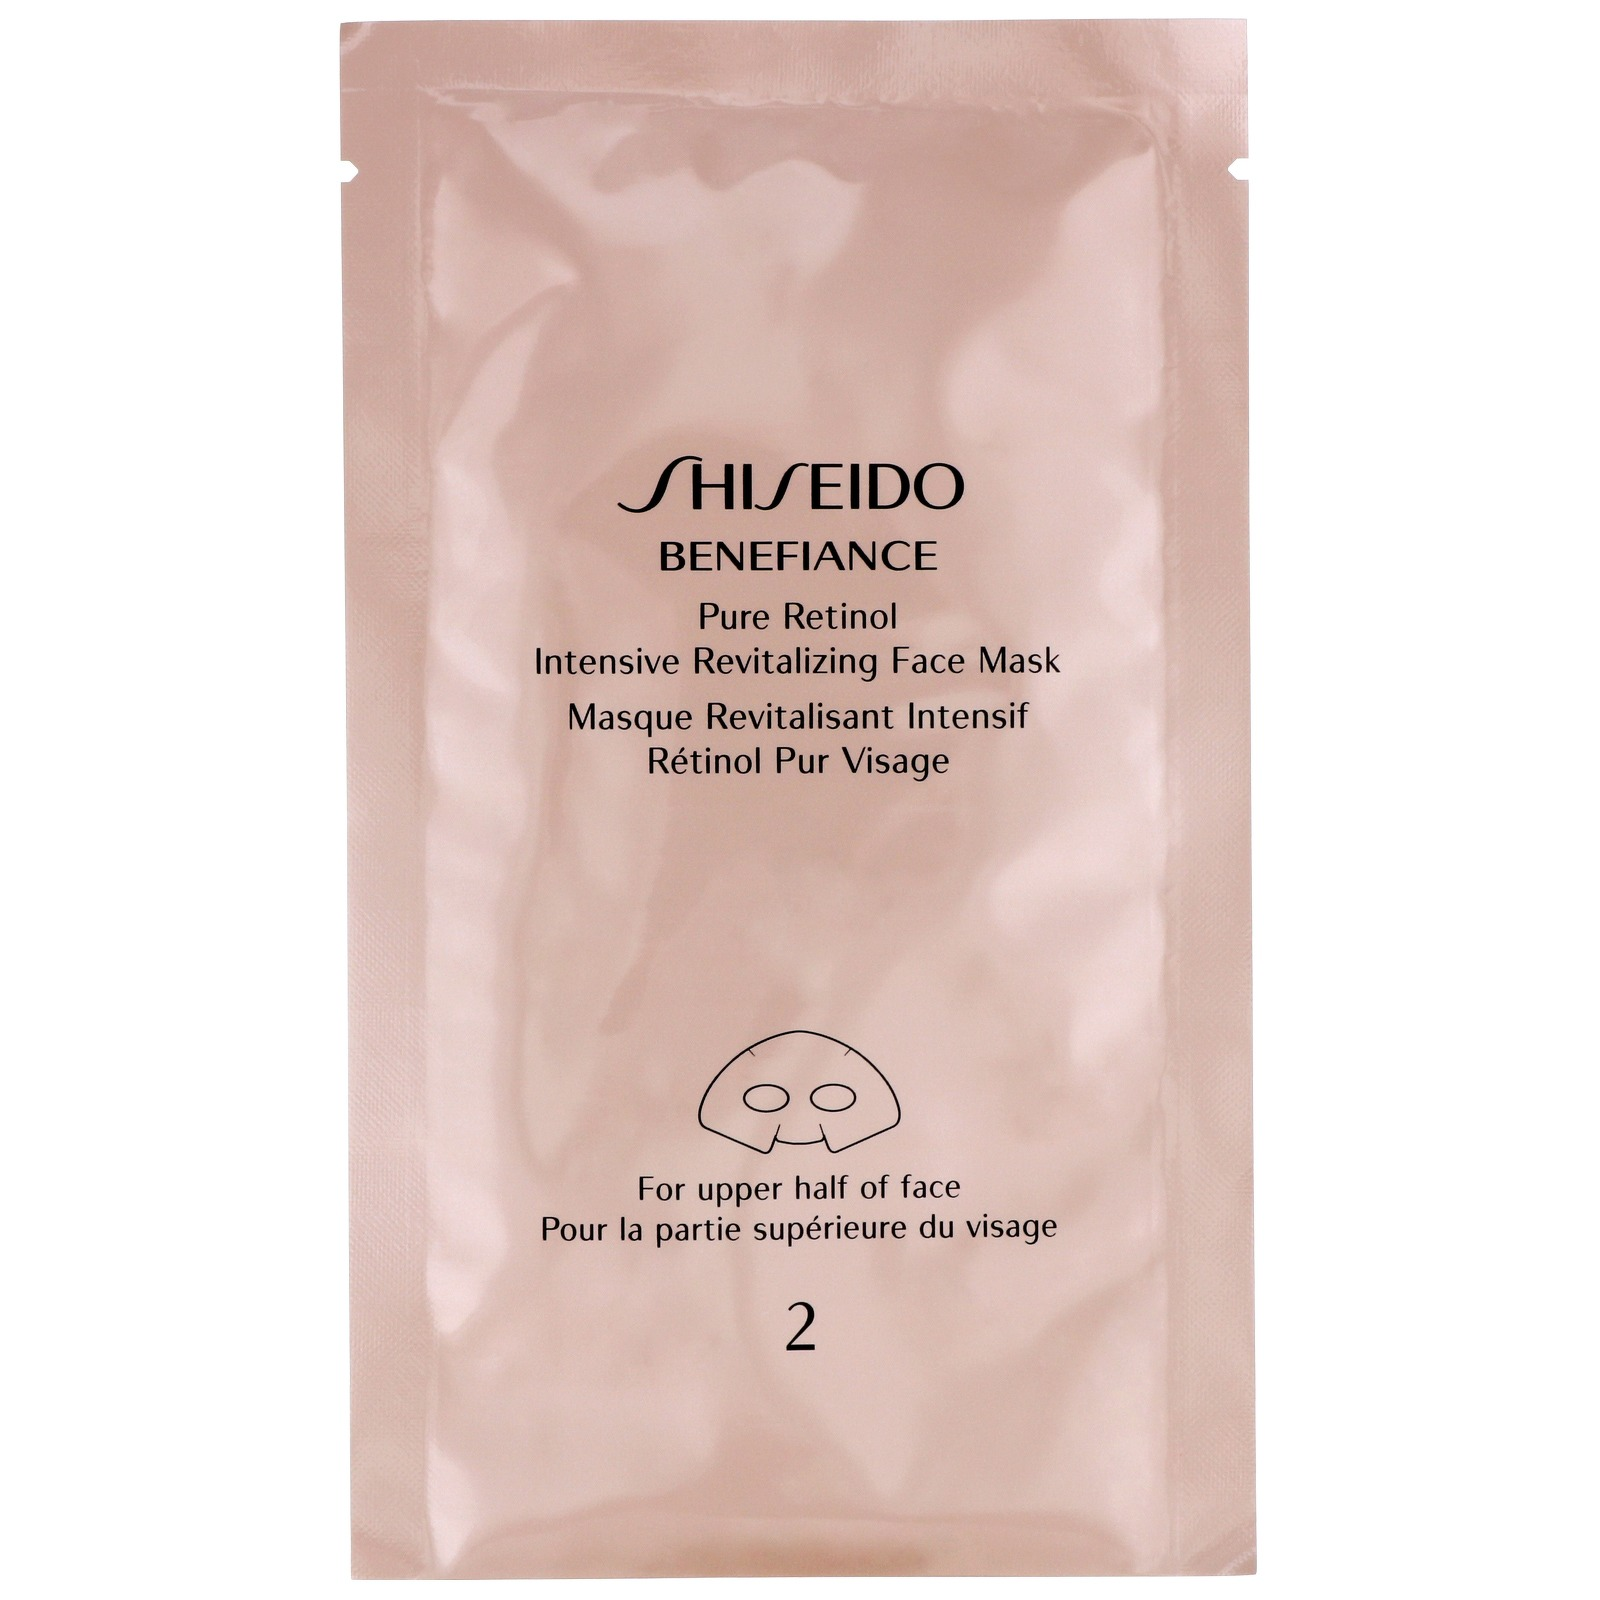 Shiseido Masks Benefiance: Pure Retinol Intensive Revitalizing Face Mask x 4